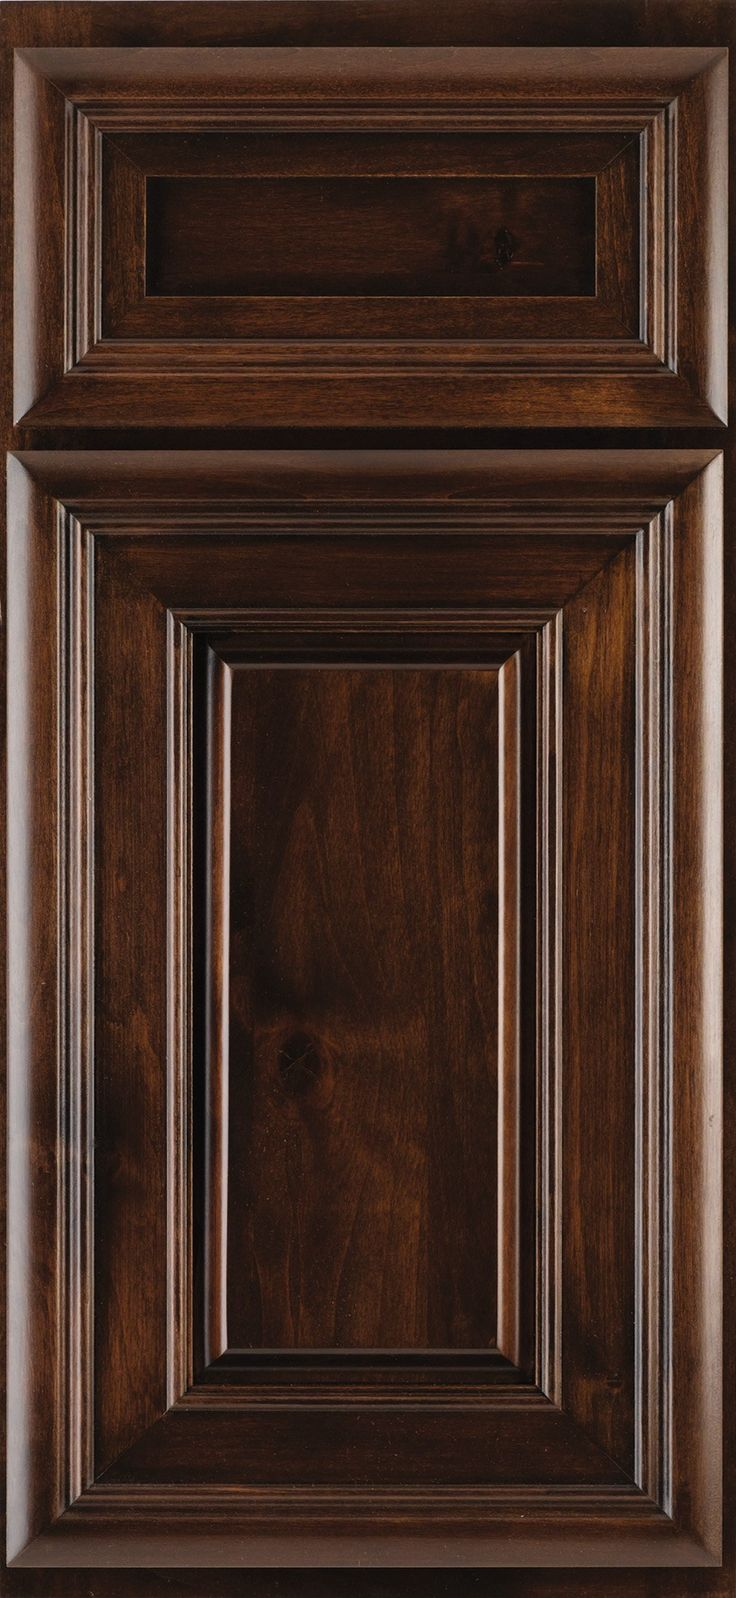 The 25 Best Replacement Kitchen Cabinet Doors Ideas On Pinterest Building Cabinet Doors